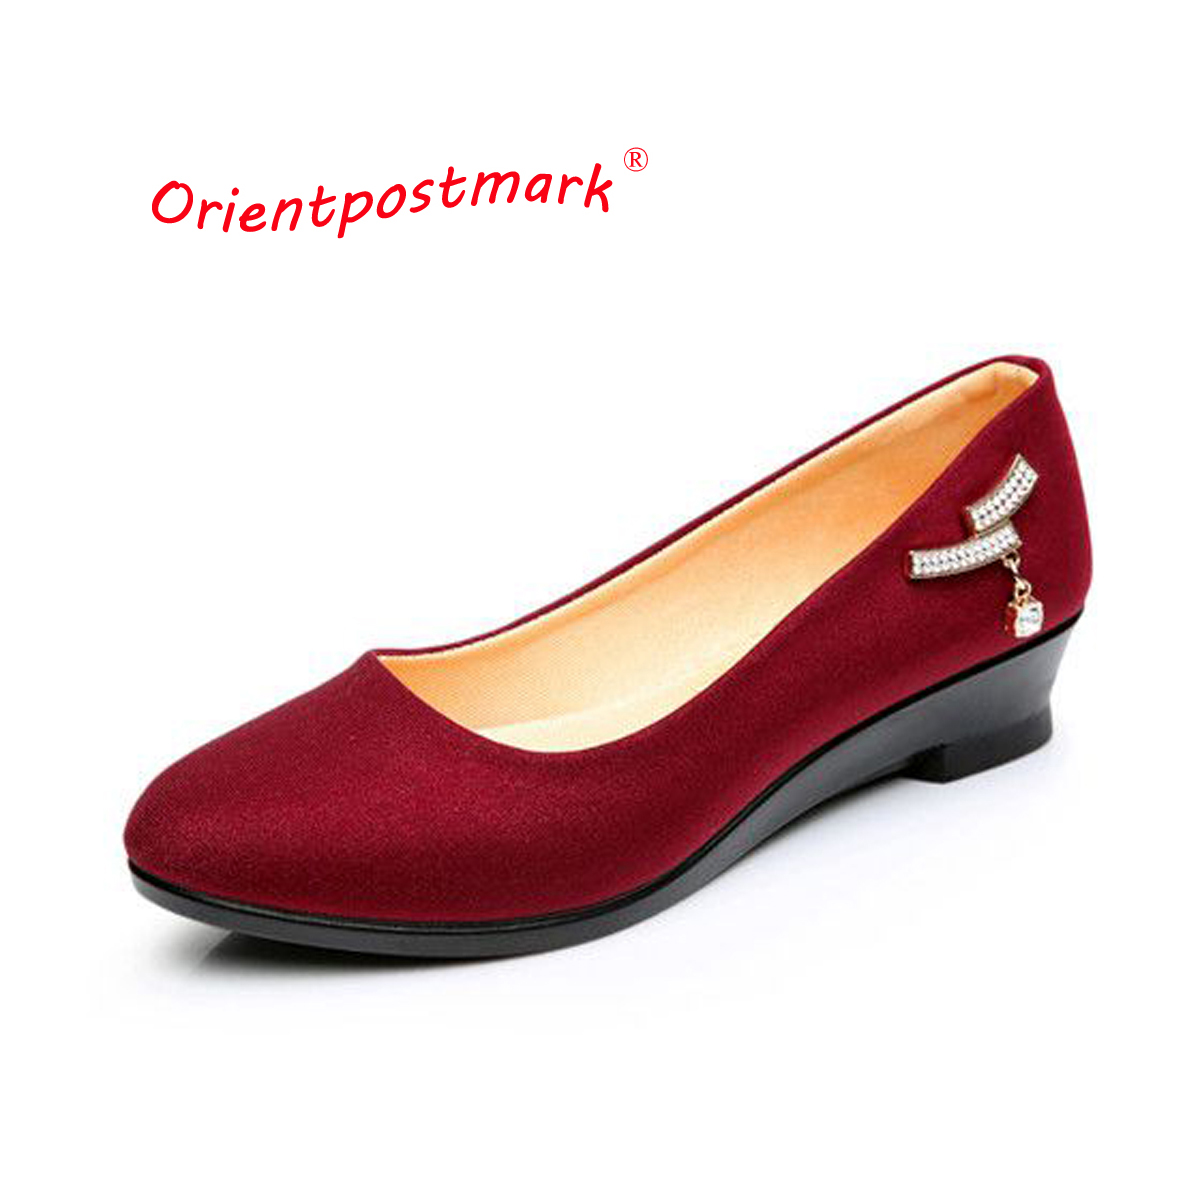 Women Ballet Wedges Shoes Women Shoes for Work Cloth Flats Sweet Loafers Slip On Women's Wedges Shoes Oversize Boat Shoes women work sweet shoes women wedges shoes cloth loafers slip on women s wedges office shoes for driving rest oversize boat shoes